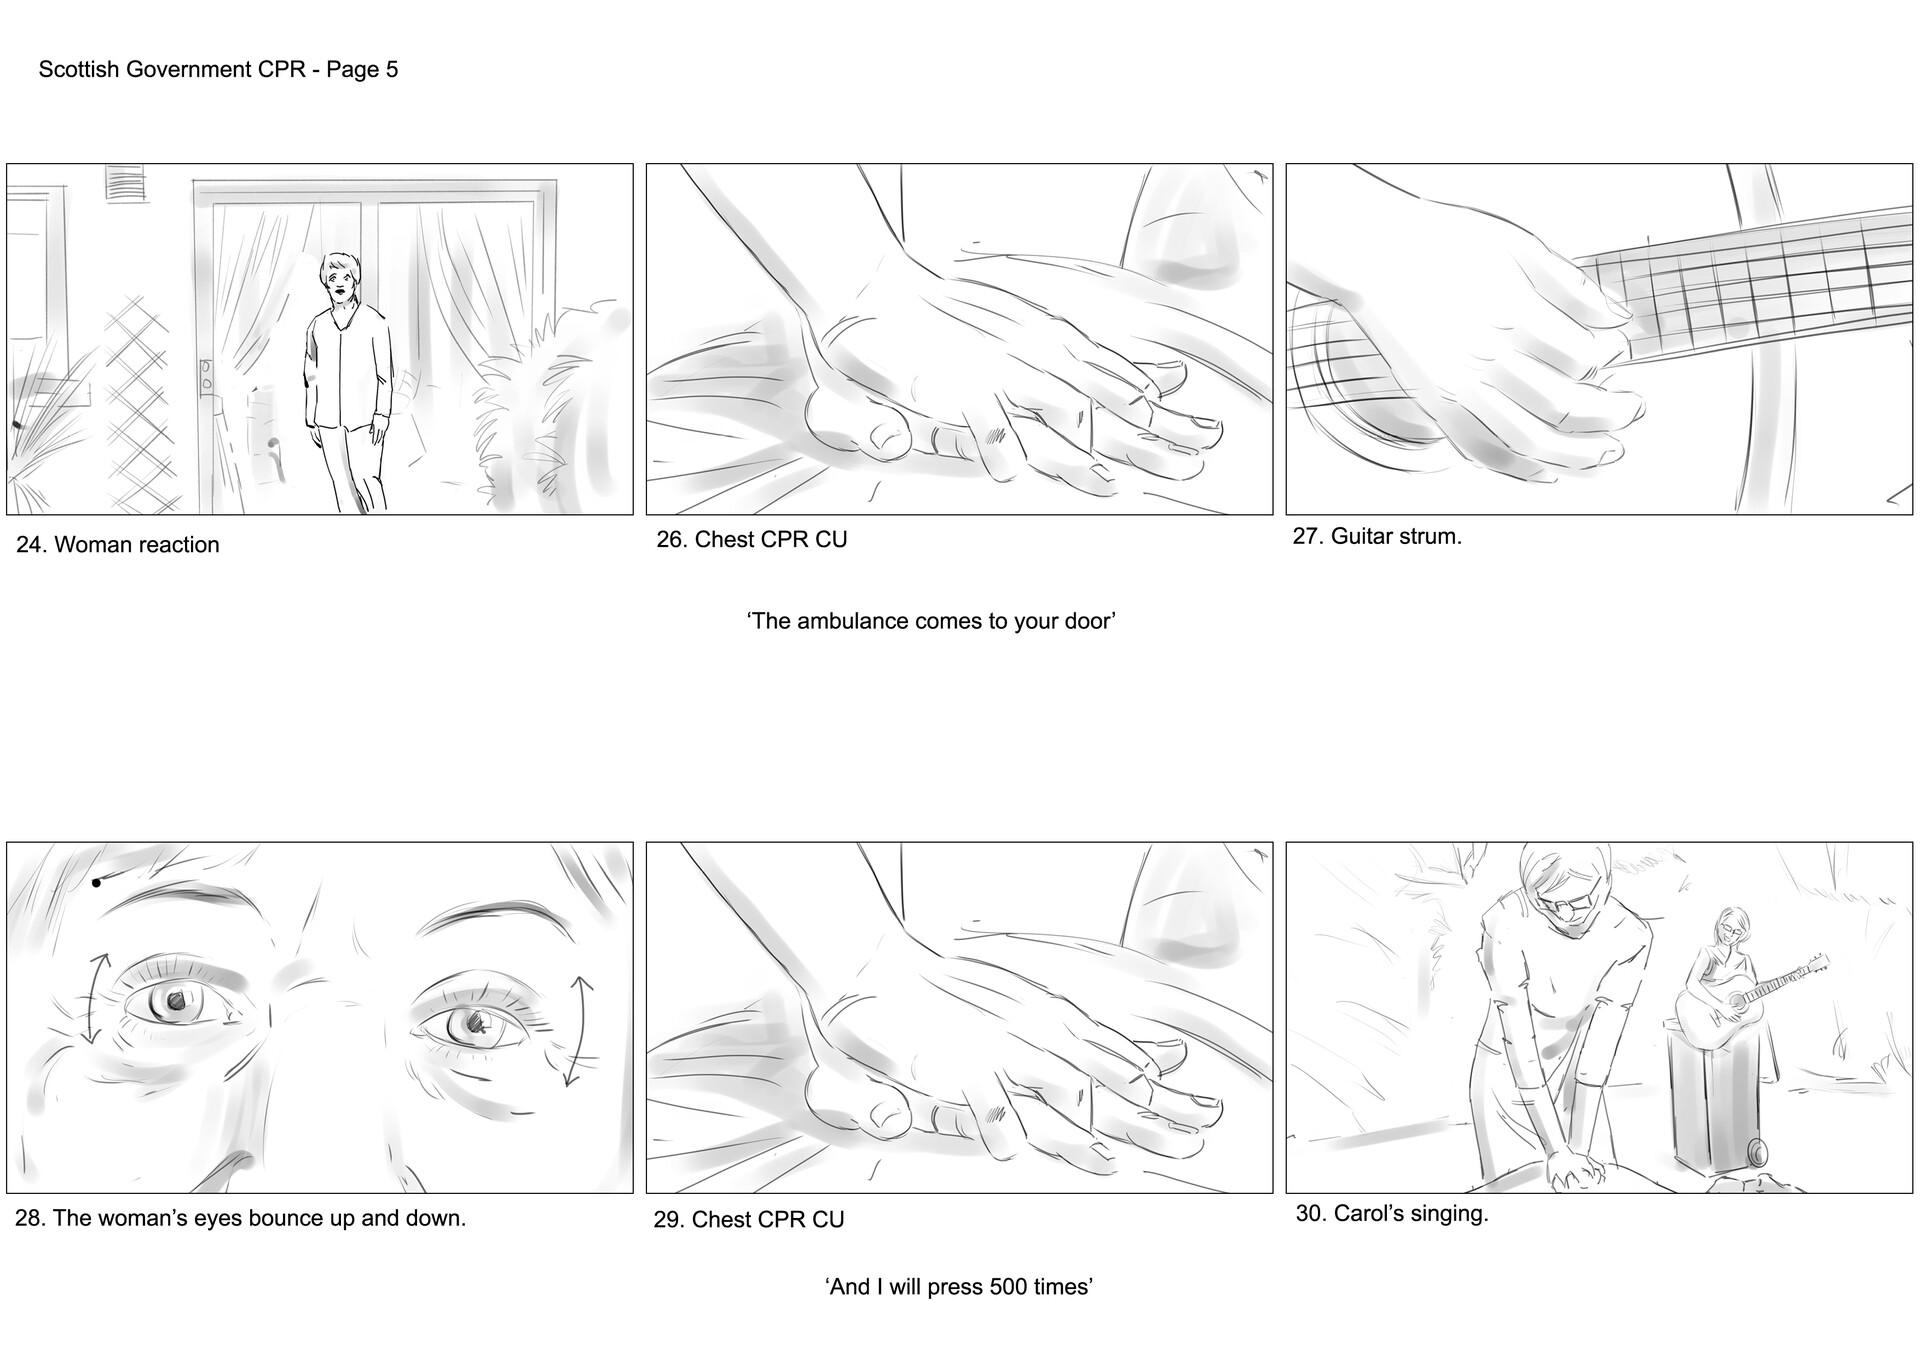 David newbigging save a life for scotland storyboards v2 5